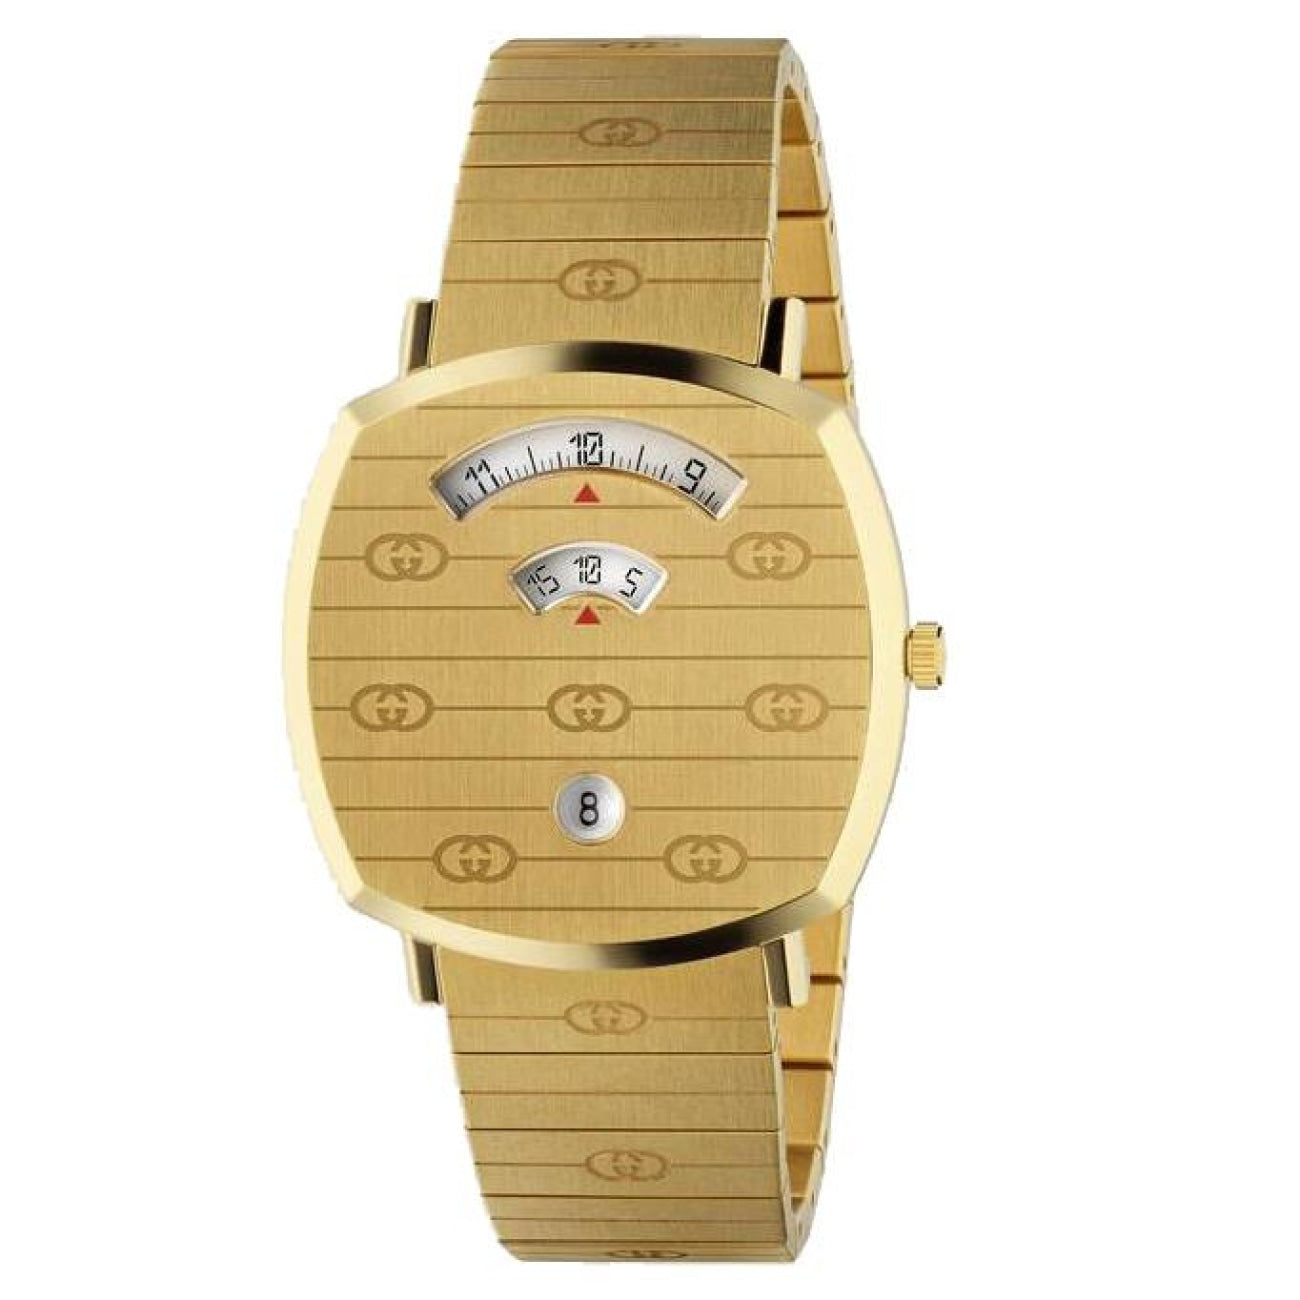 Gucci Watches - Grip watch 38mm | Manfredi Jewels